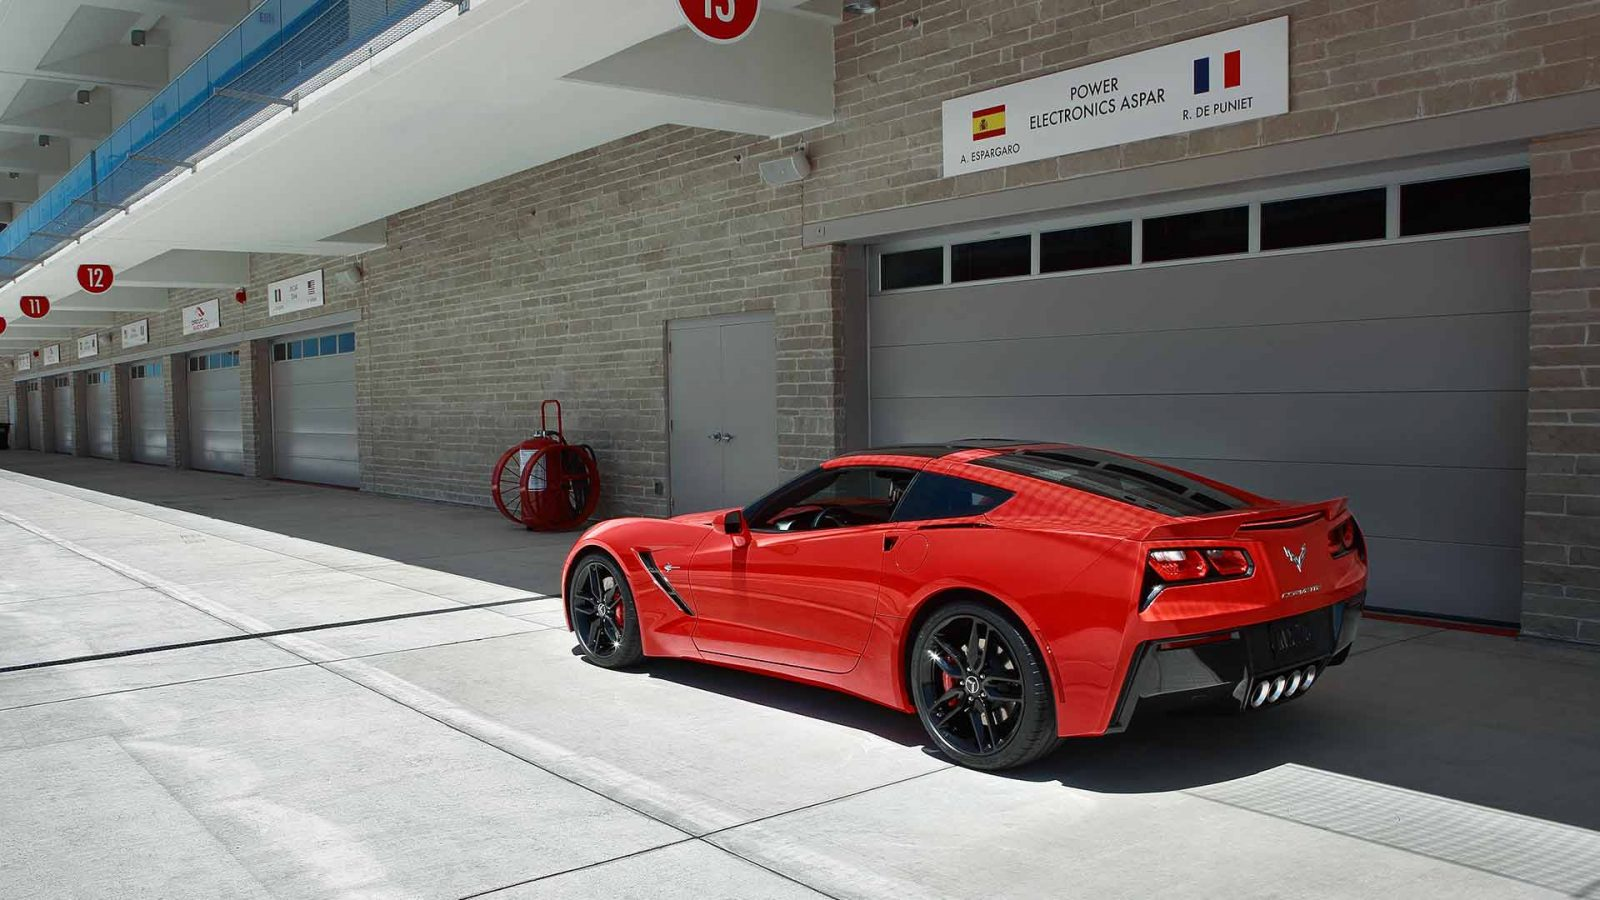 2014 Corvette Stingray Colors Gallery9